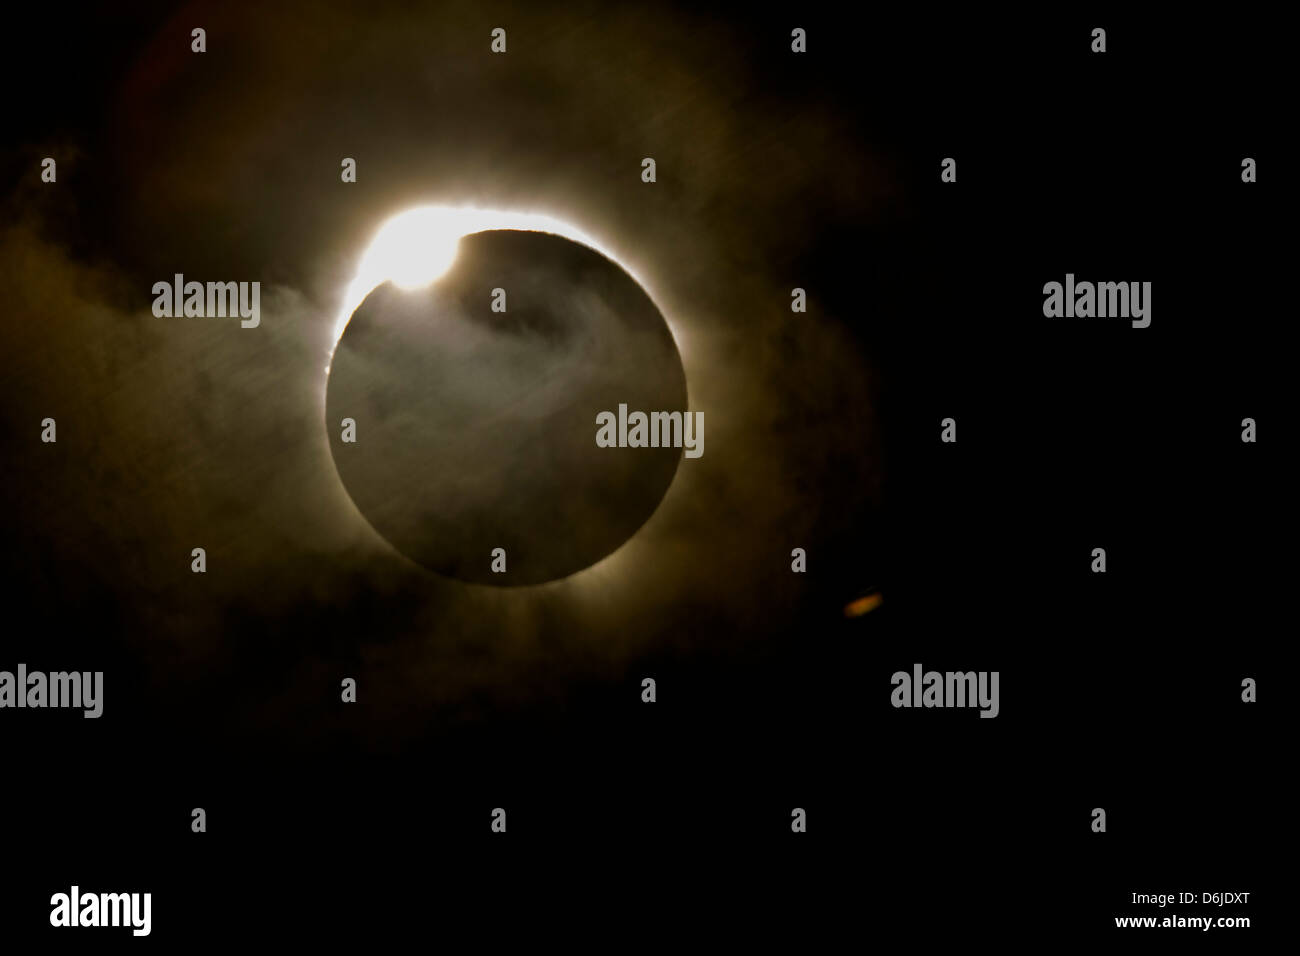 Diamond ring effect during total eclipse of the sun on 13 November 2012 from Palm Cove, Cairns, North Queensland, - Stock Image